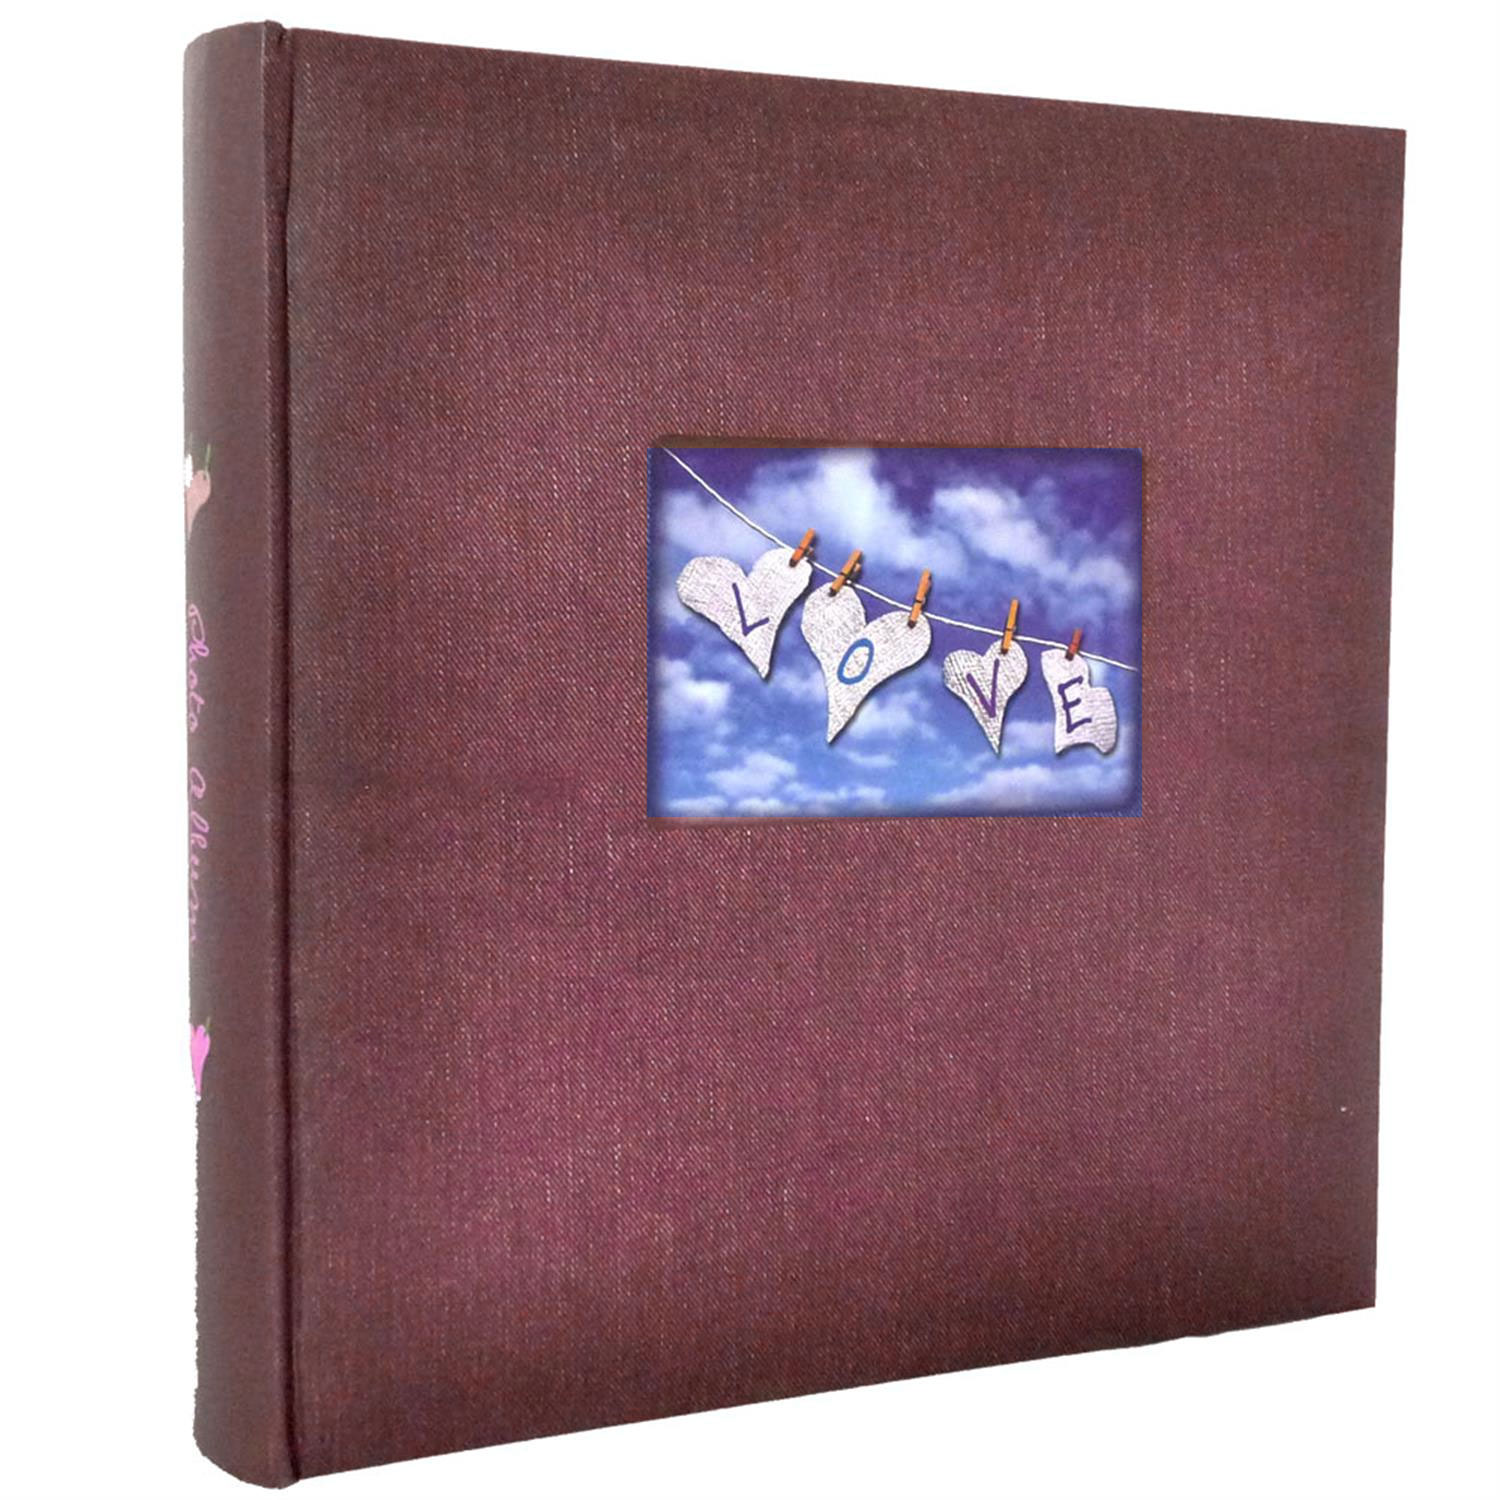 Dorr Love Red Traditional Photo Album - 100 Sides